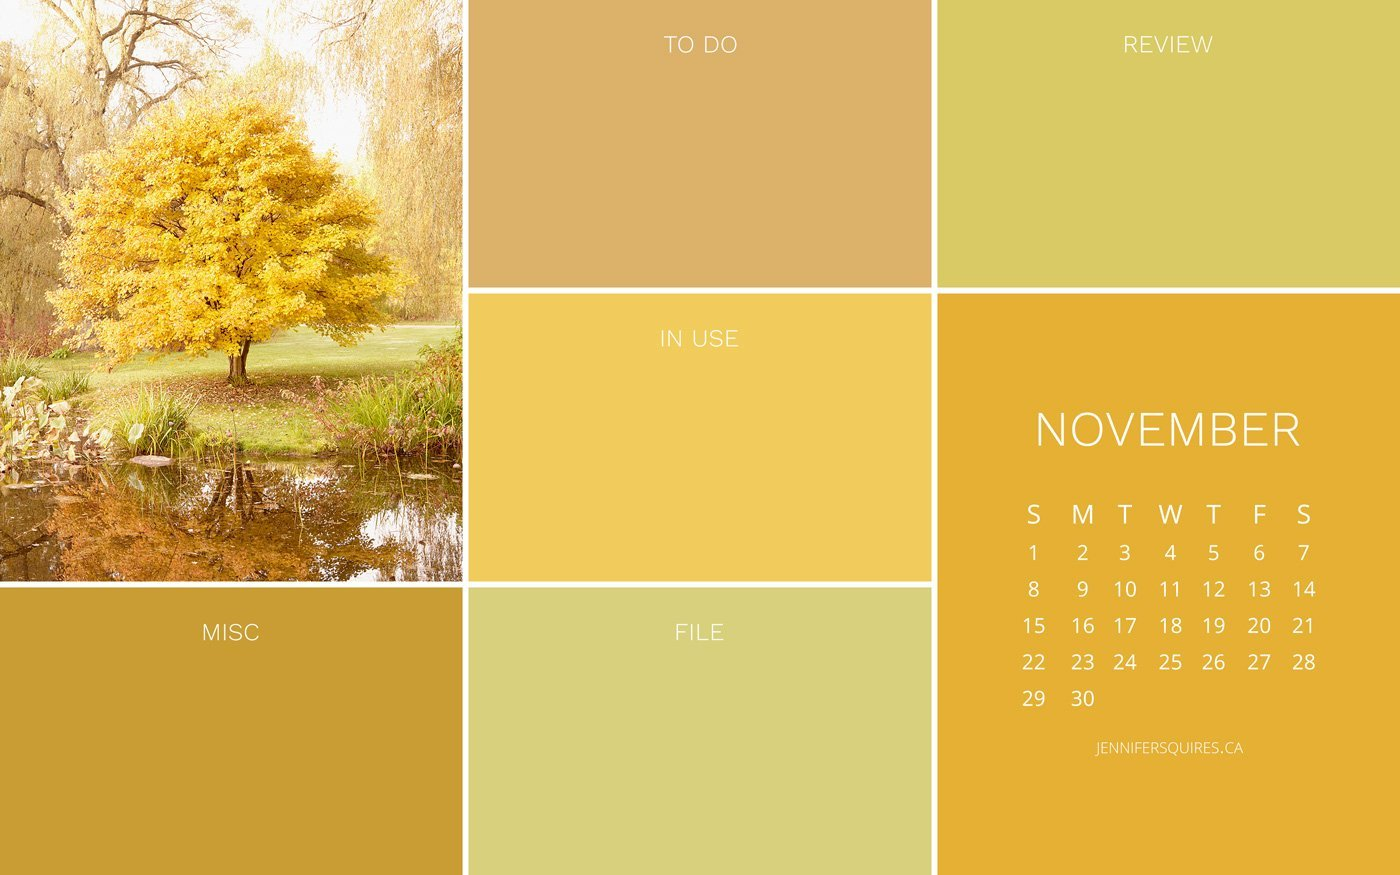 November 2020 Wallpaper With Calendar For Iphone And Desktop